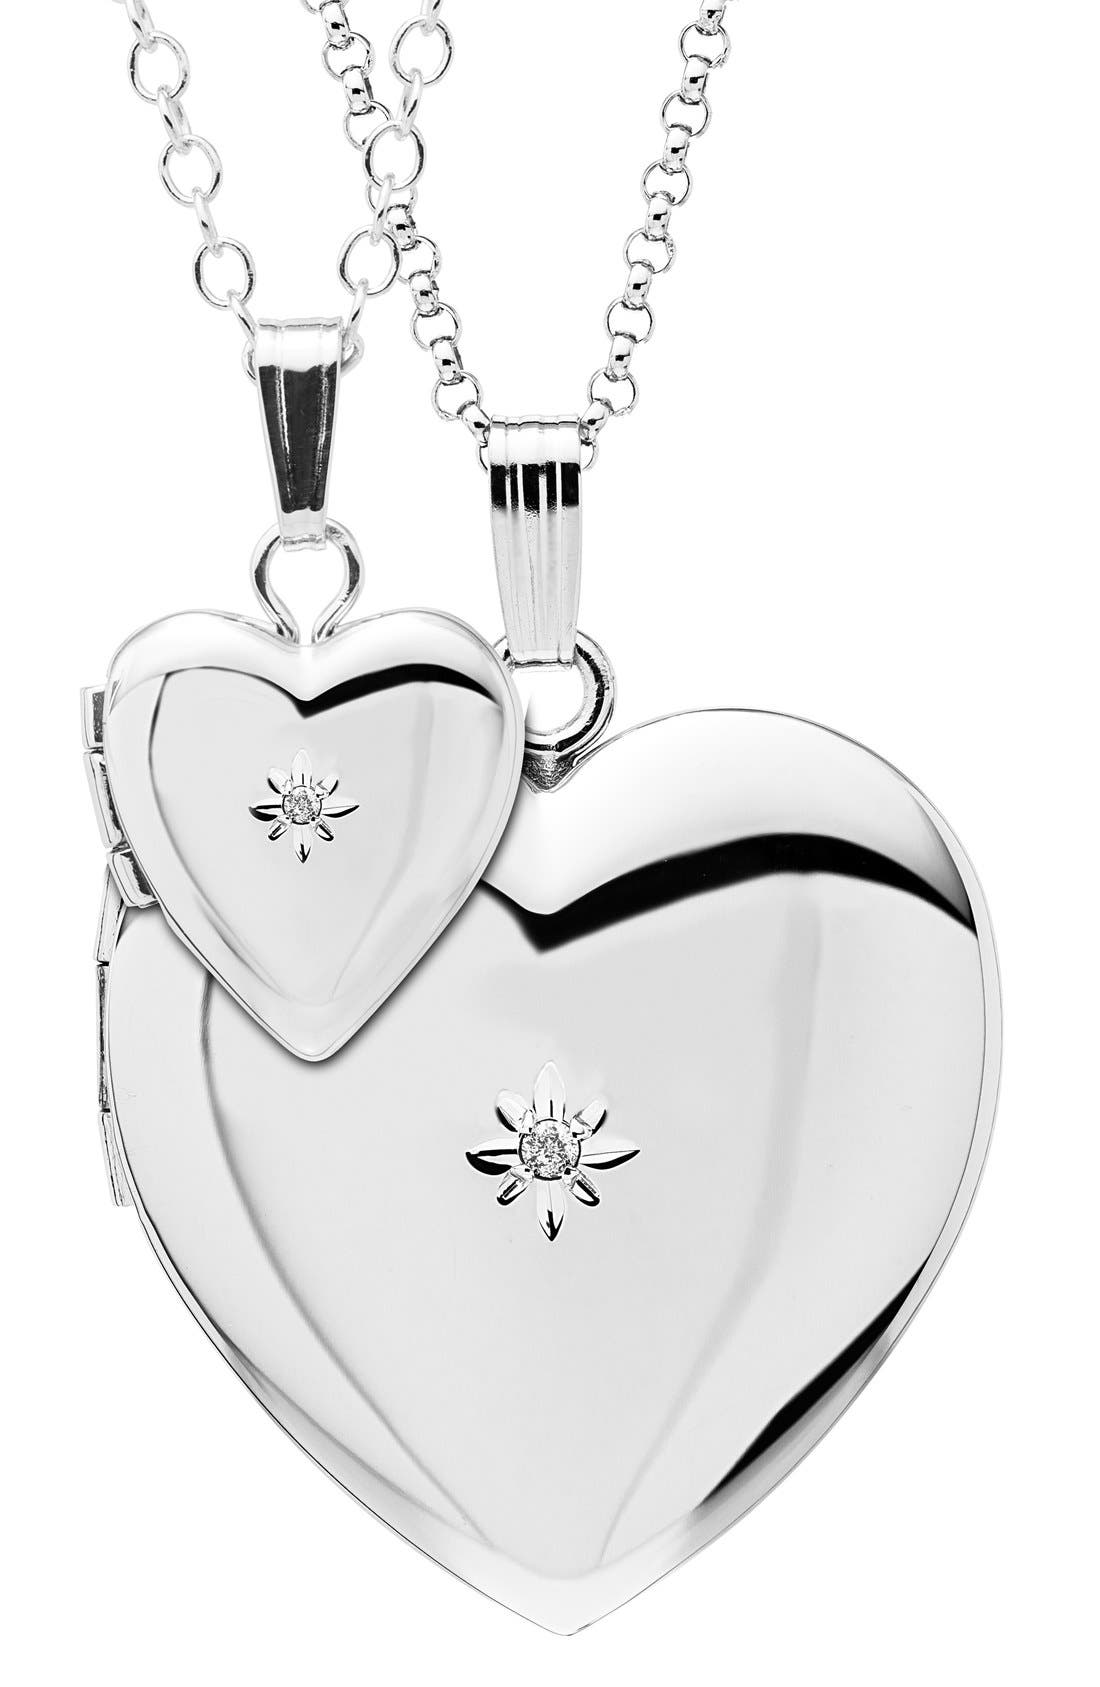 Main Image - Mignonette Mother & Daughter Locket Set